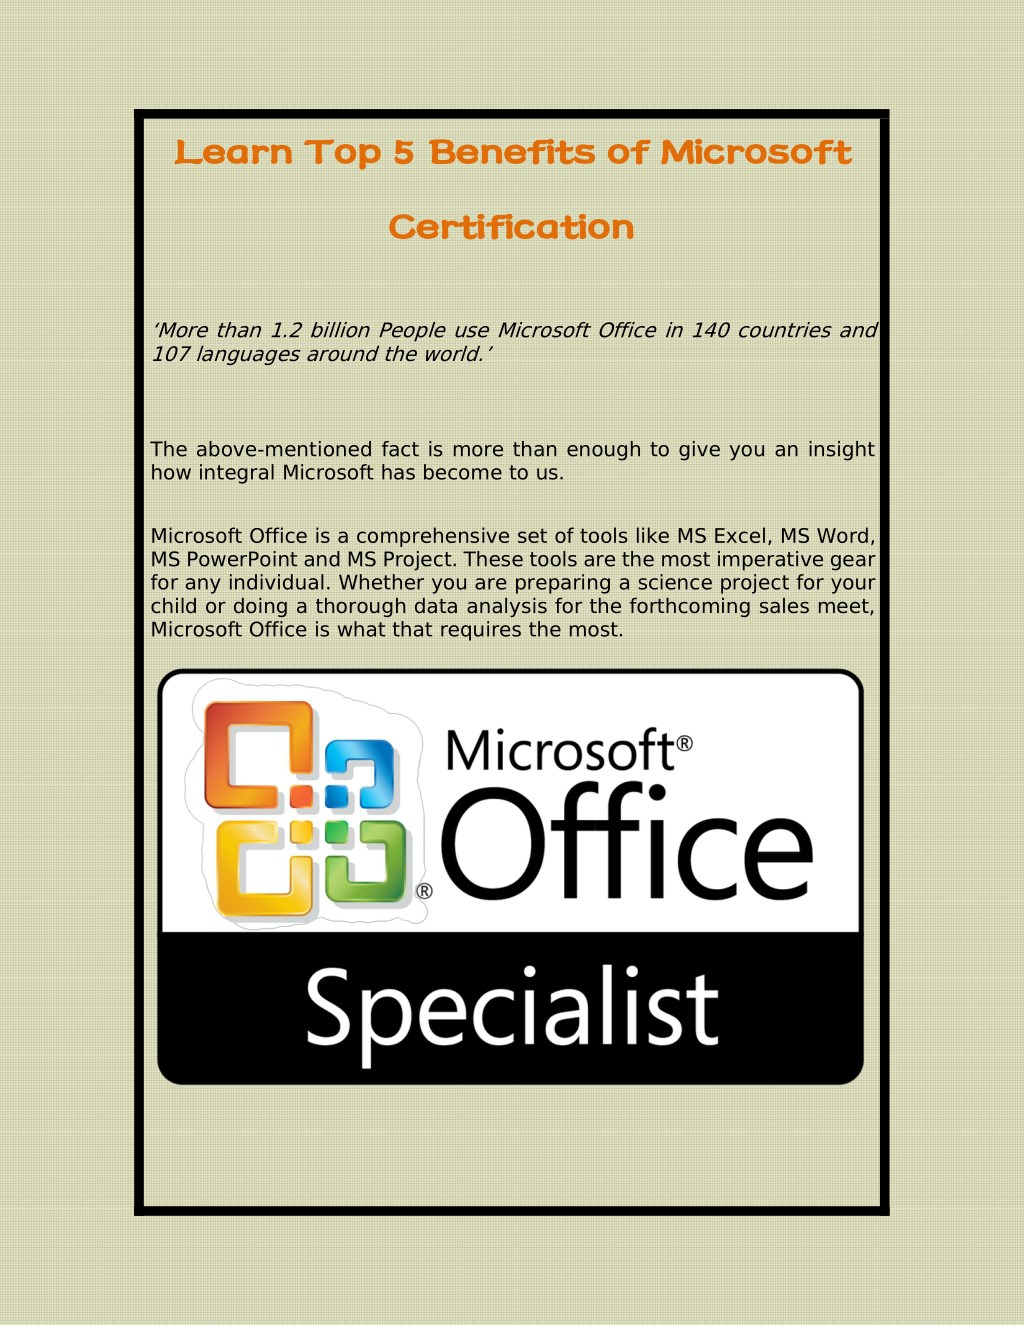 Ppt Learn Top 5 Benefits Of Microsoft Certification Powerpoint